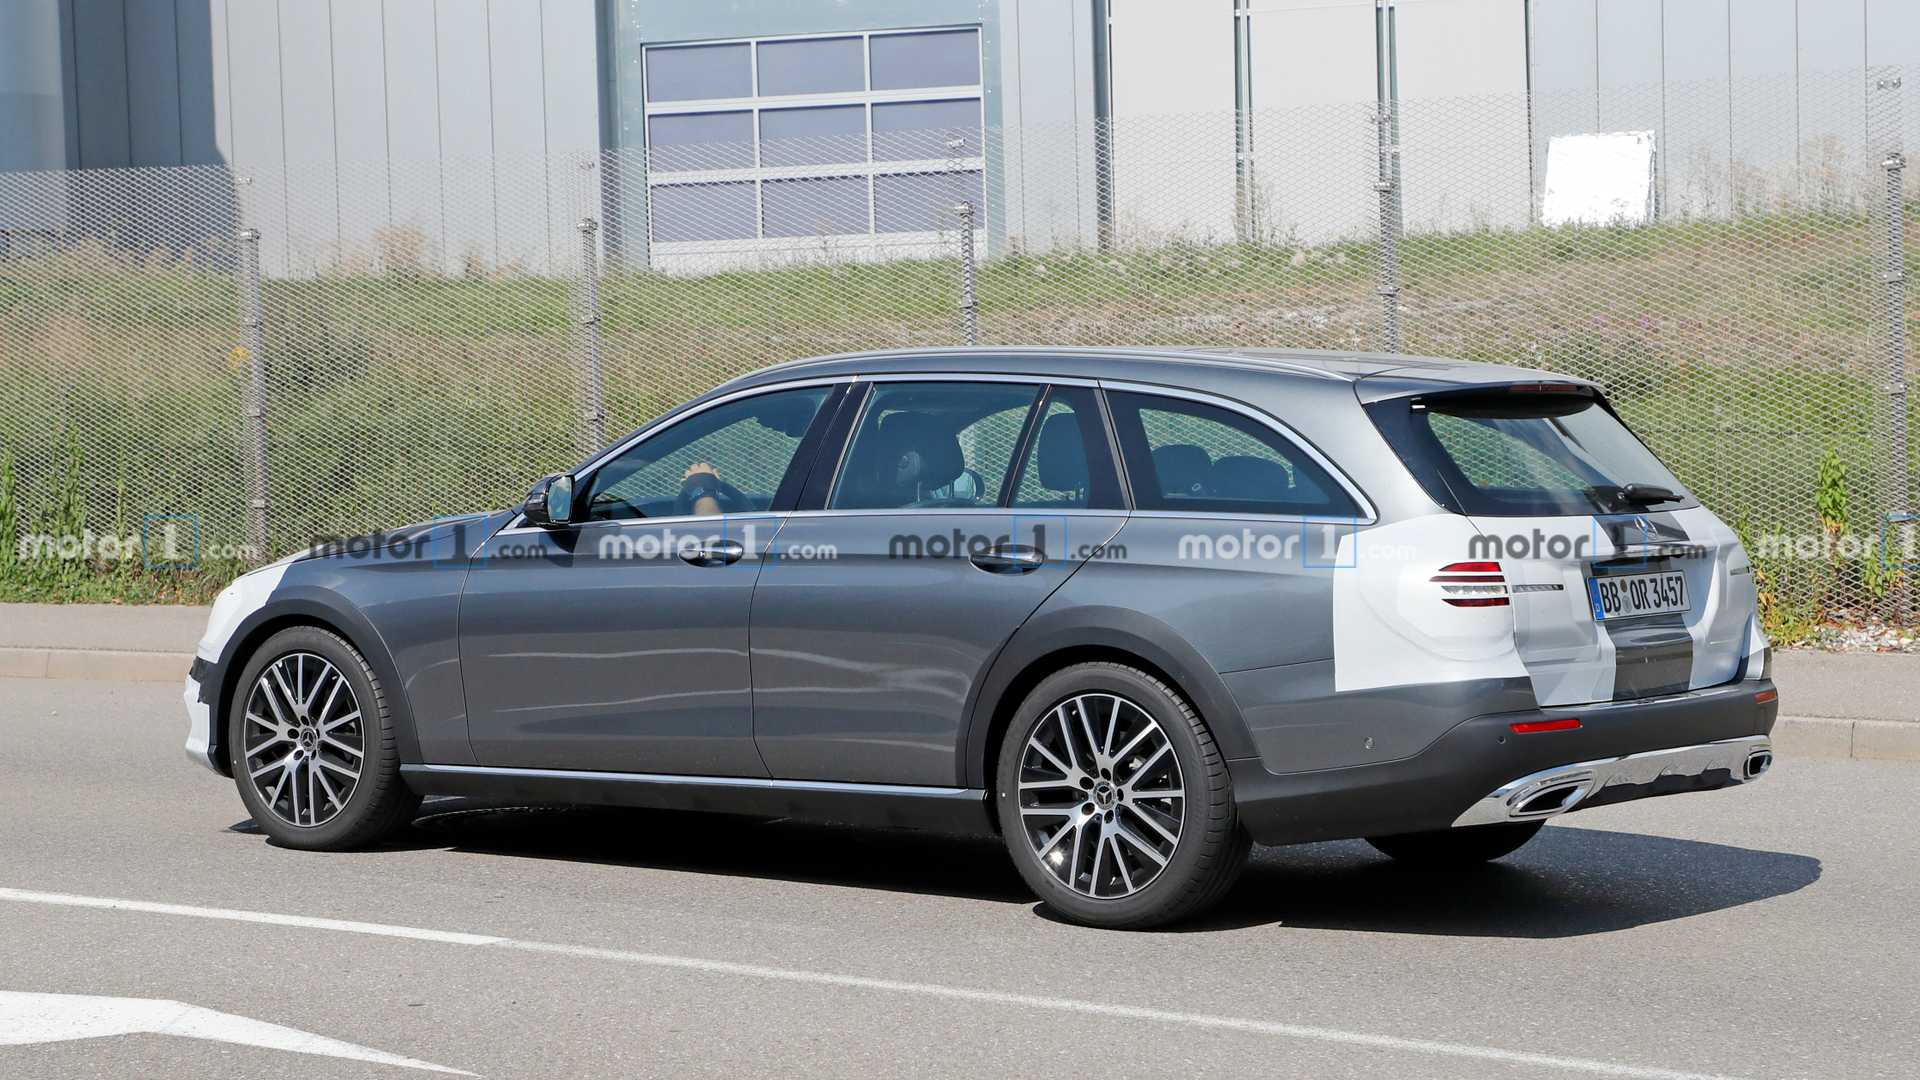 2020 - [Mercedes-Benz] Classe E restylée  - Page 3 Mercedes-e-class-all-terrain-facelift-spy-photo